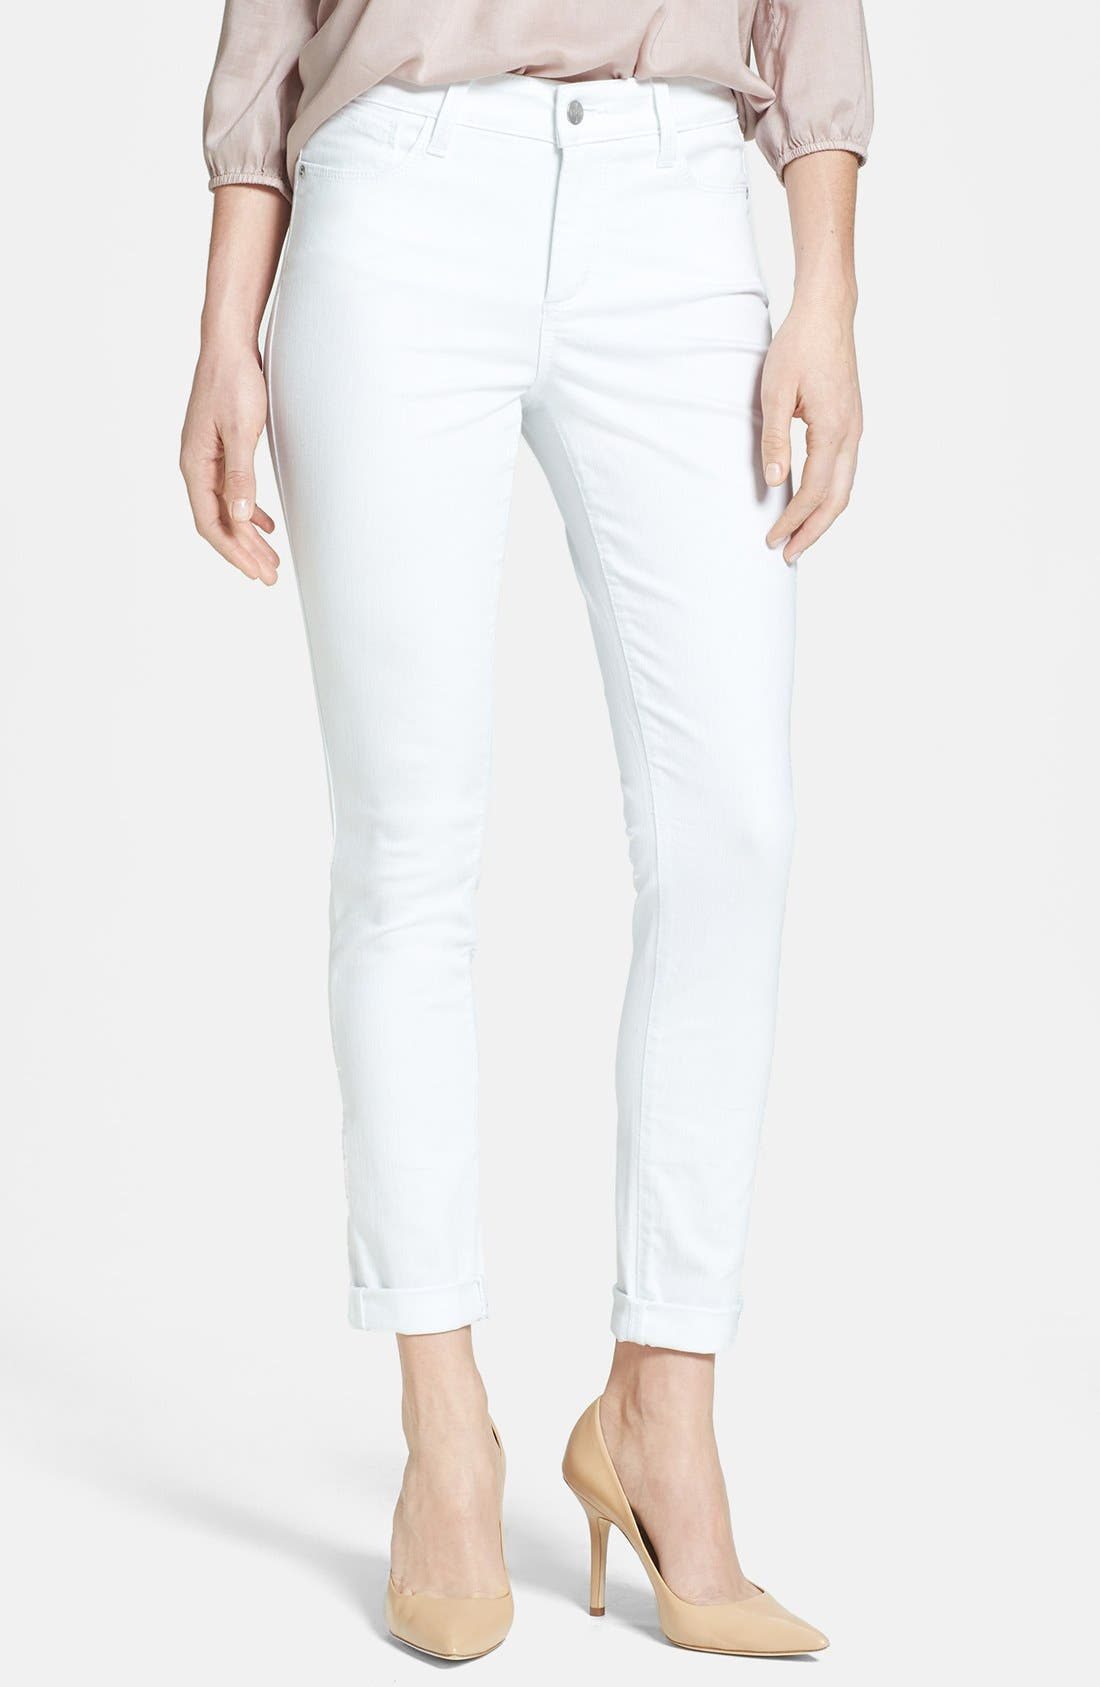 Alternate Image 1 Selected - NYDJ 'Anabelle' Stretch Skinny Jeans (Optic White)